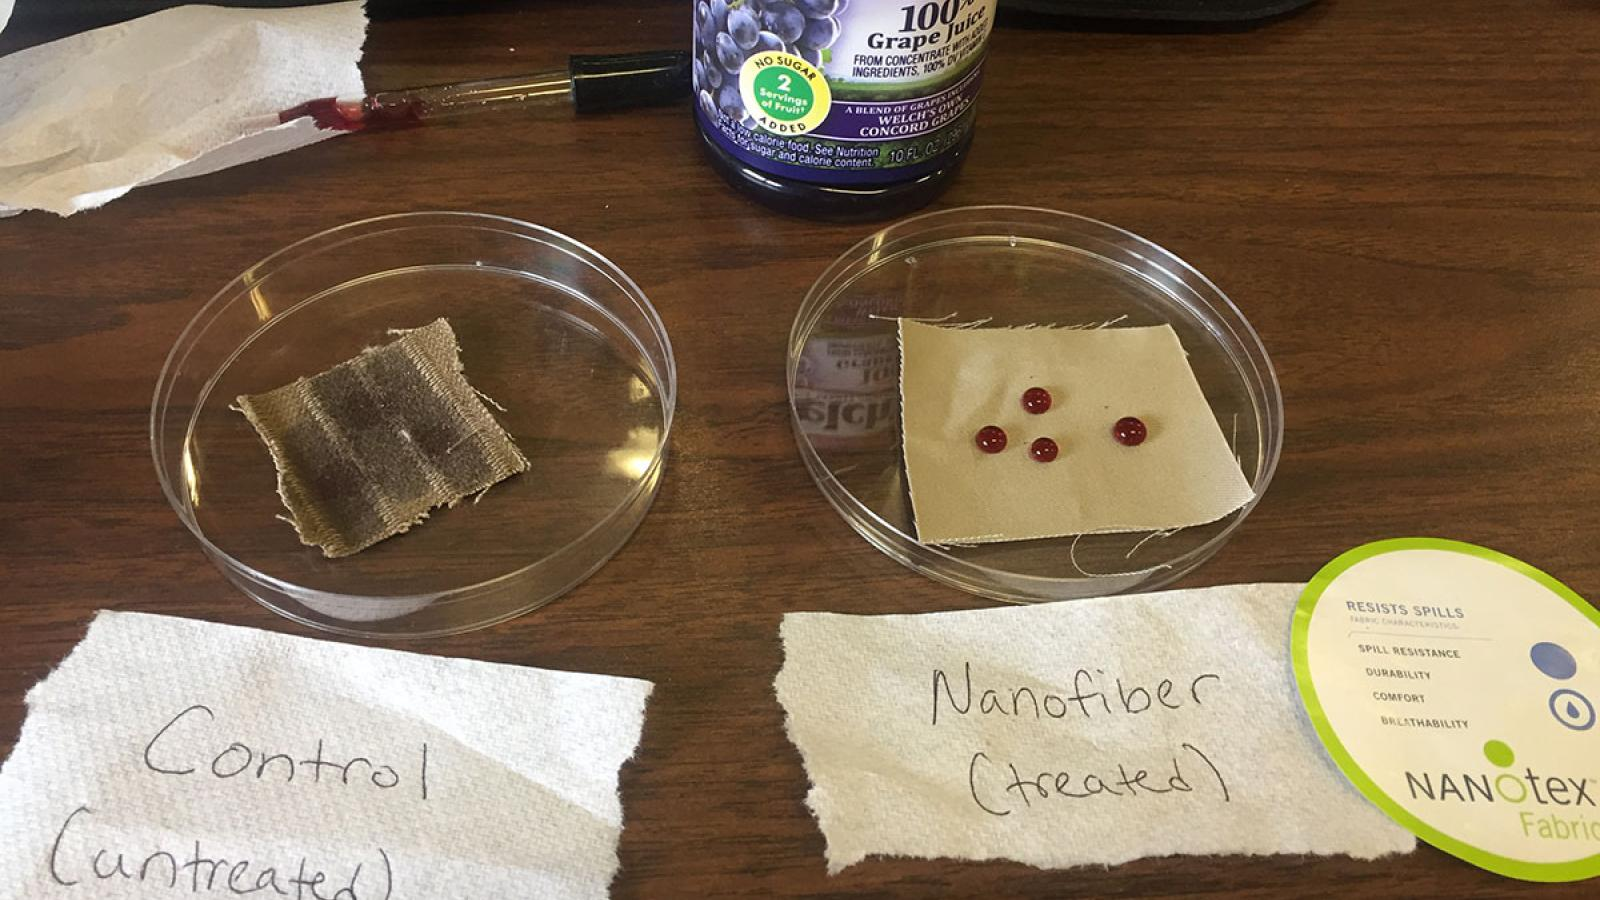 Photograph of a nanochemistry experiment showing untreated fabric vs. nanofiber fabric. The untreated fabric has the grape juice soaking in whereas the nanofiber fabric has droplets of grape juice and it is not sinking in.